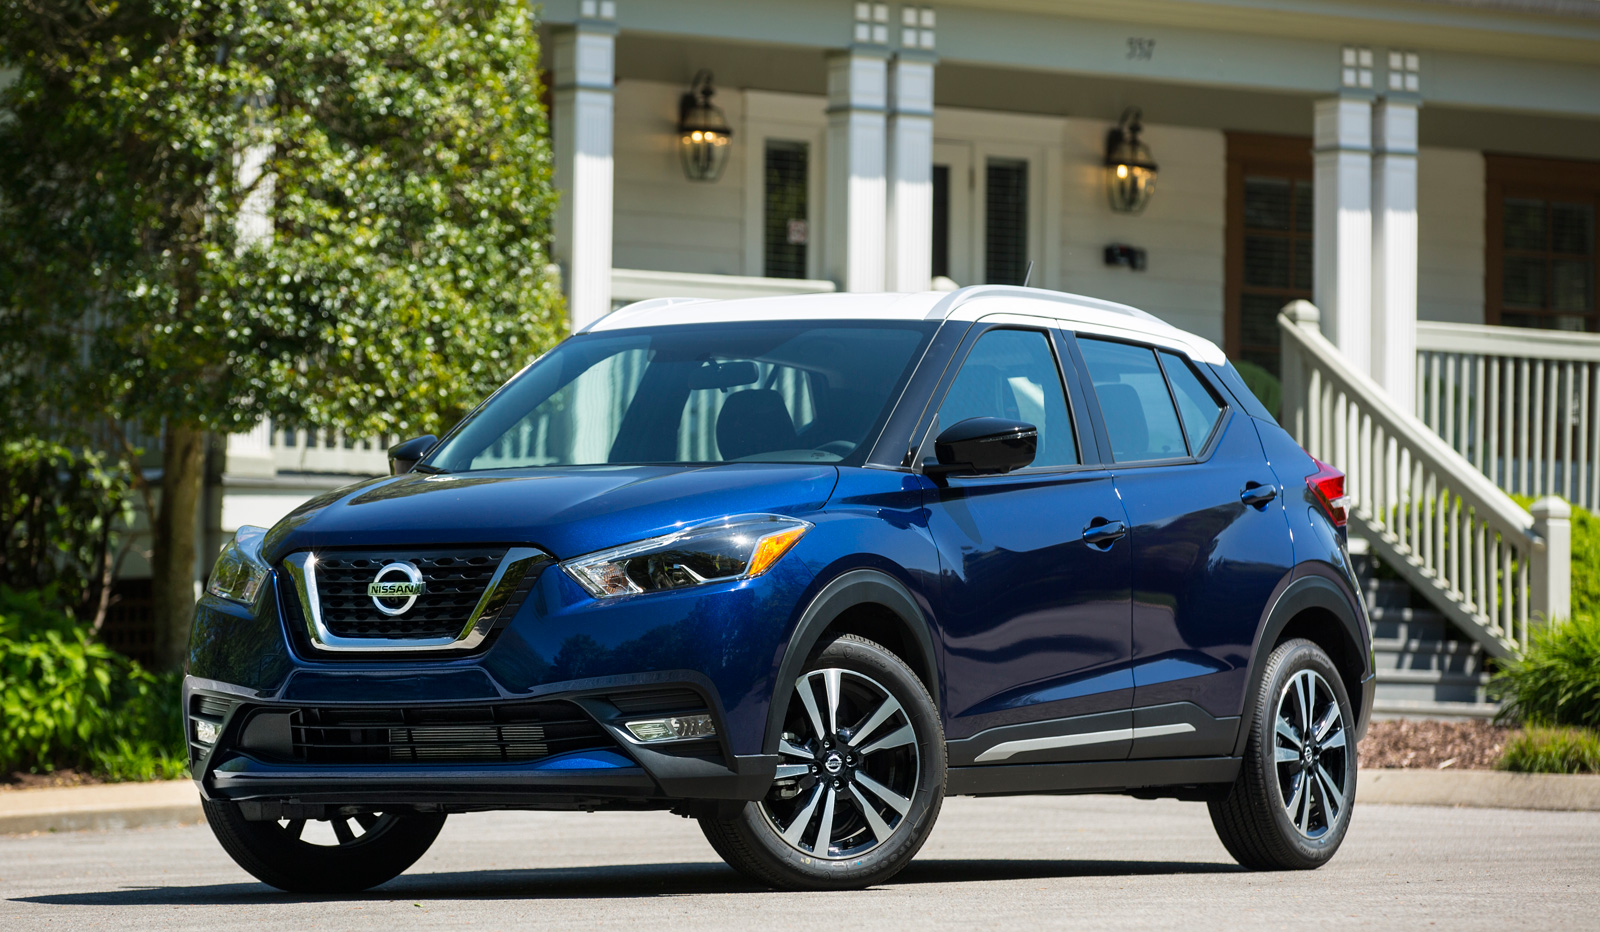 new nissan subcompact crossover goes on sale this spring news. Black Bedroom Furniture Sets. Home Design Ideas